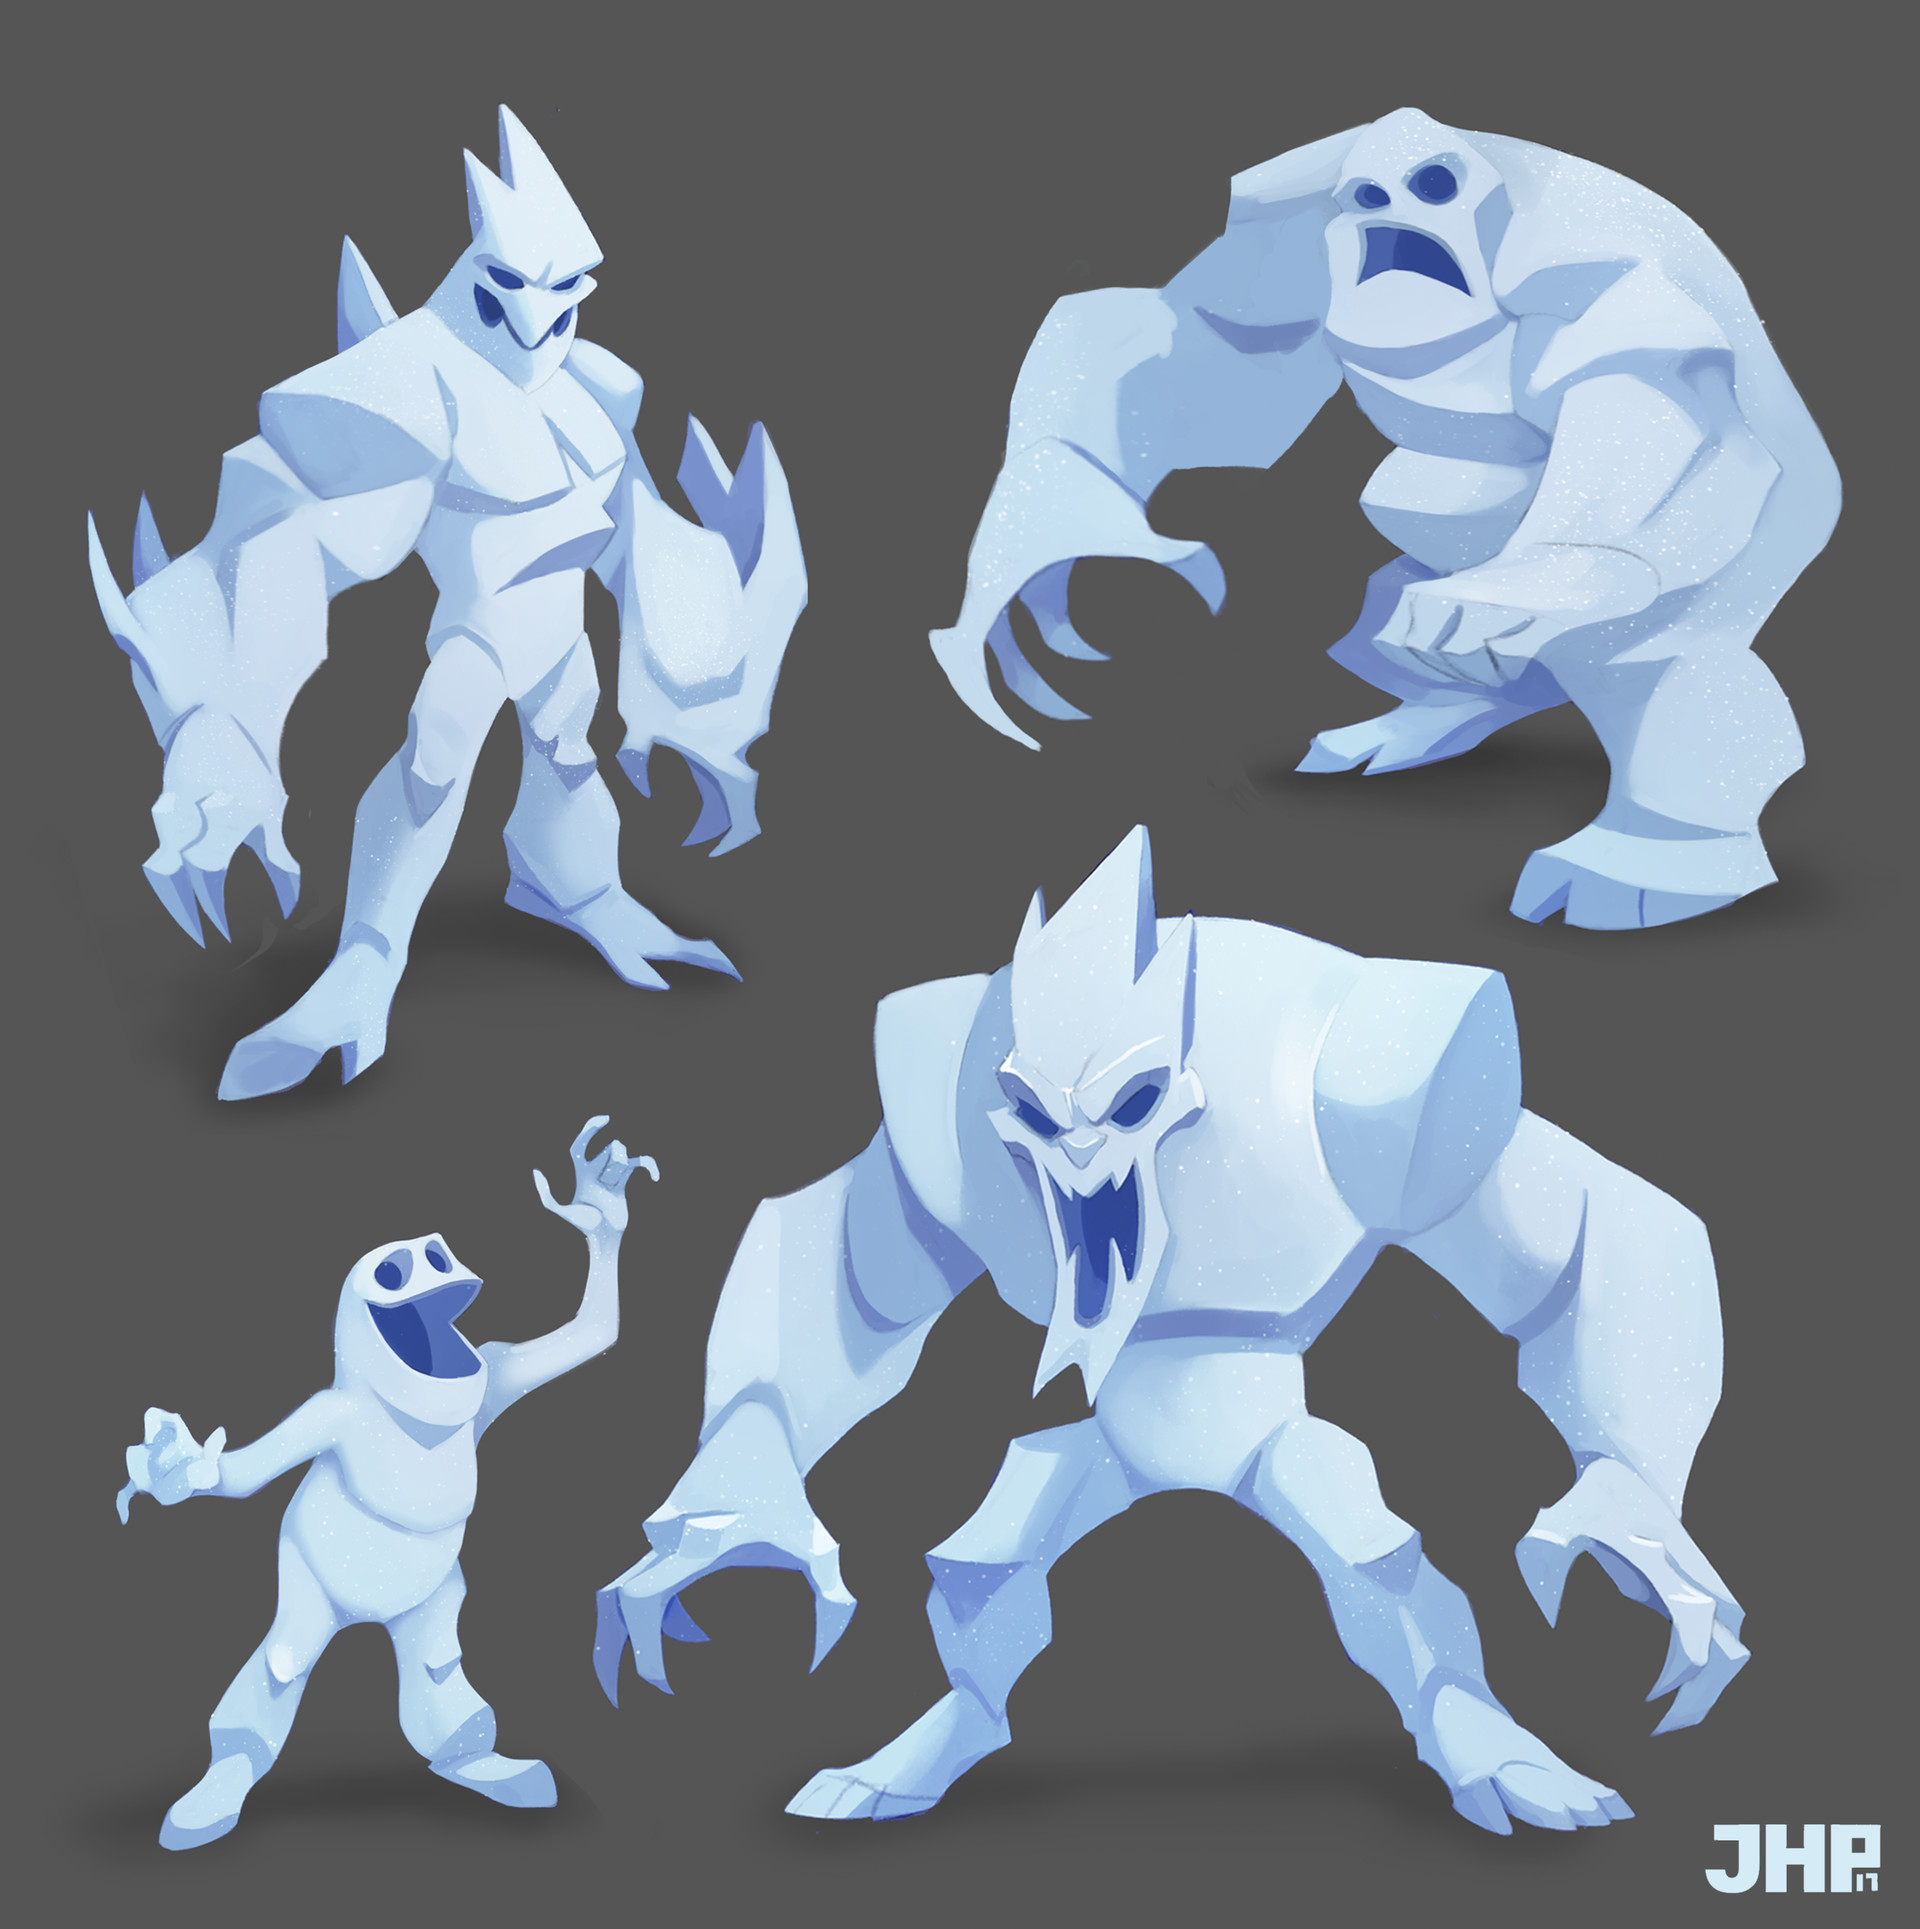 Joao henrique pacheco snowmonsters